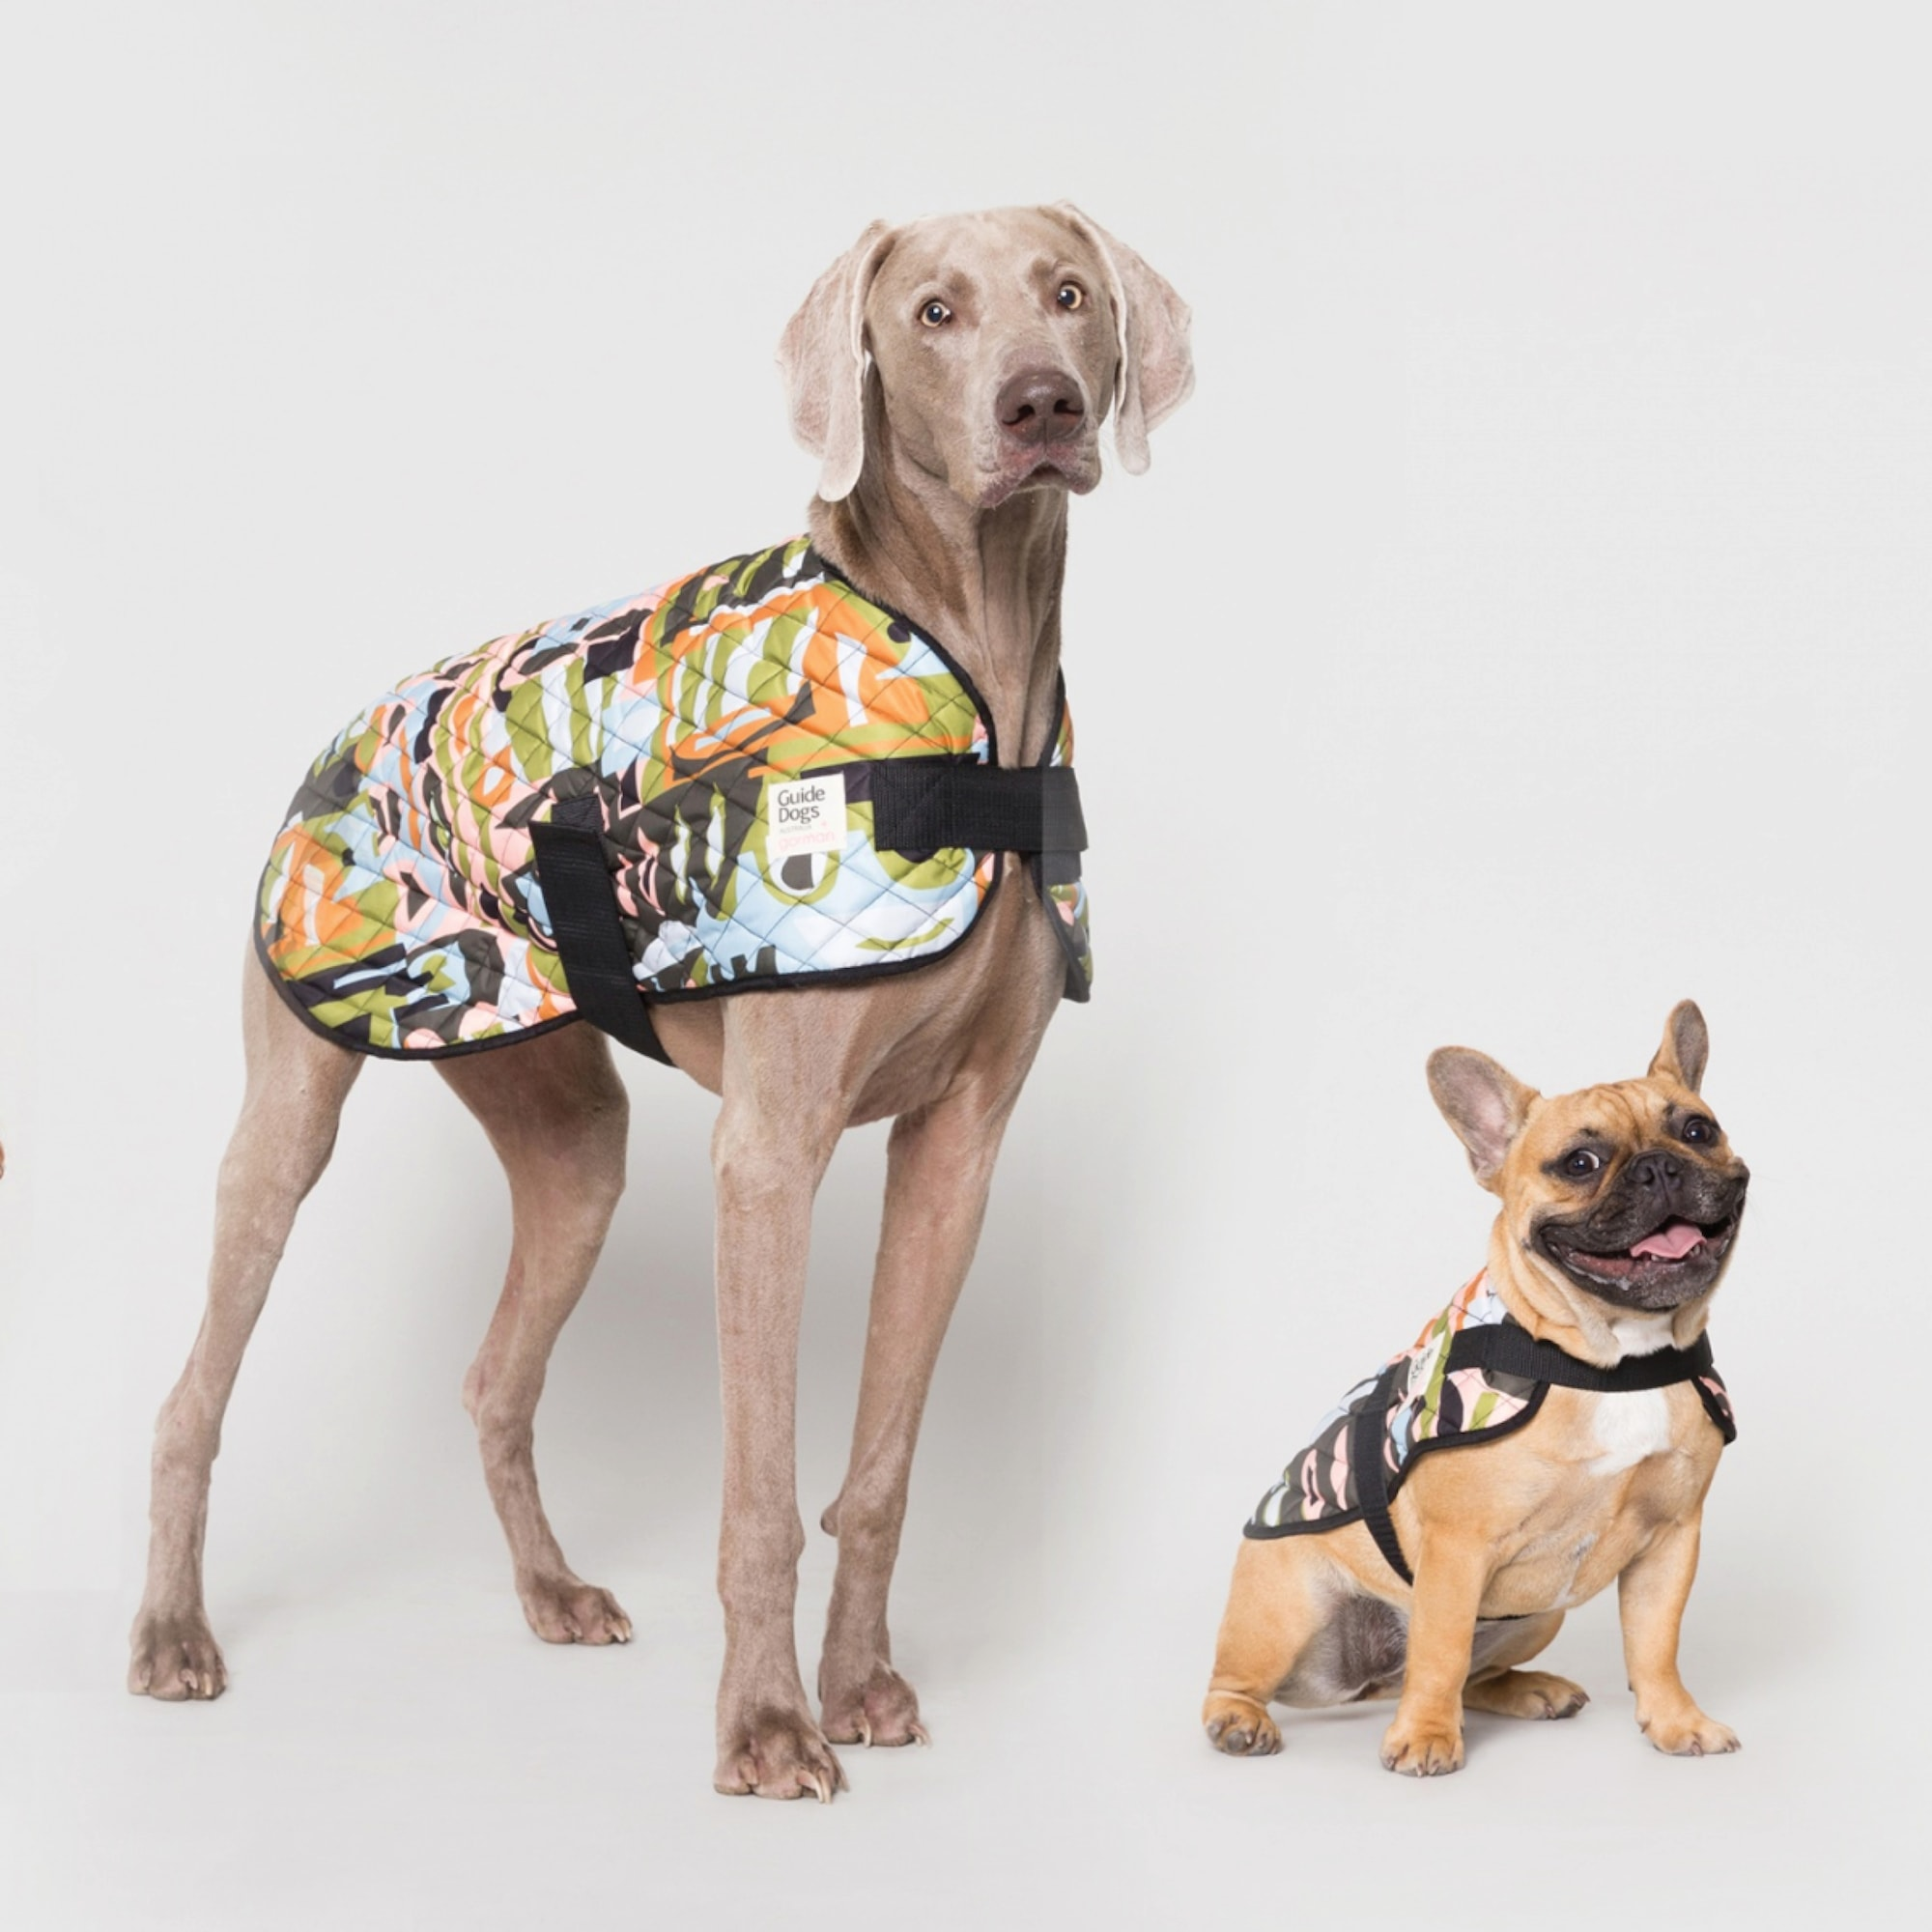 Gorman lent their unique, colourful prints to Guide Dogs Victoria for a charitable range of doggie coats.